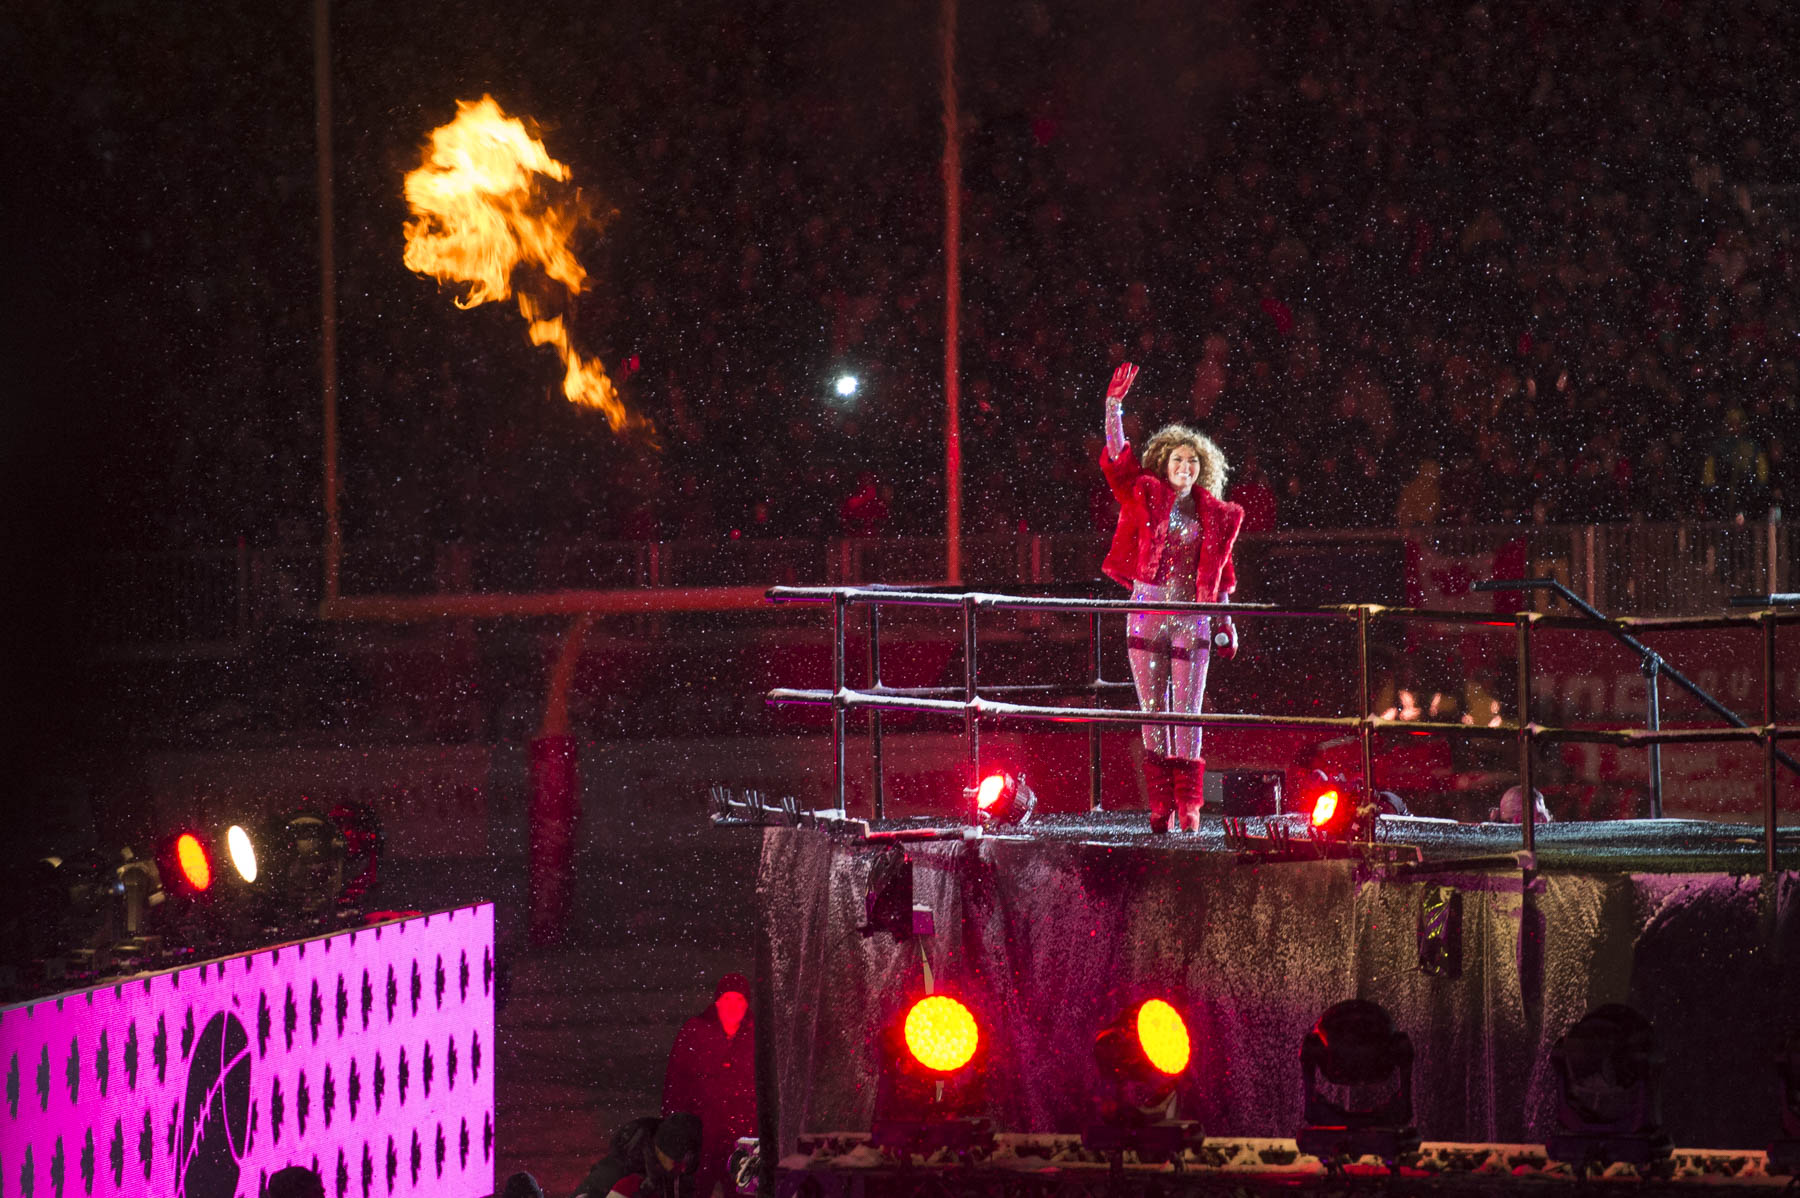 Canadian singer Shania Twain performed at the halftime show.